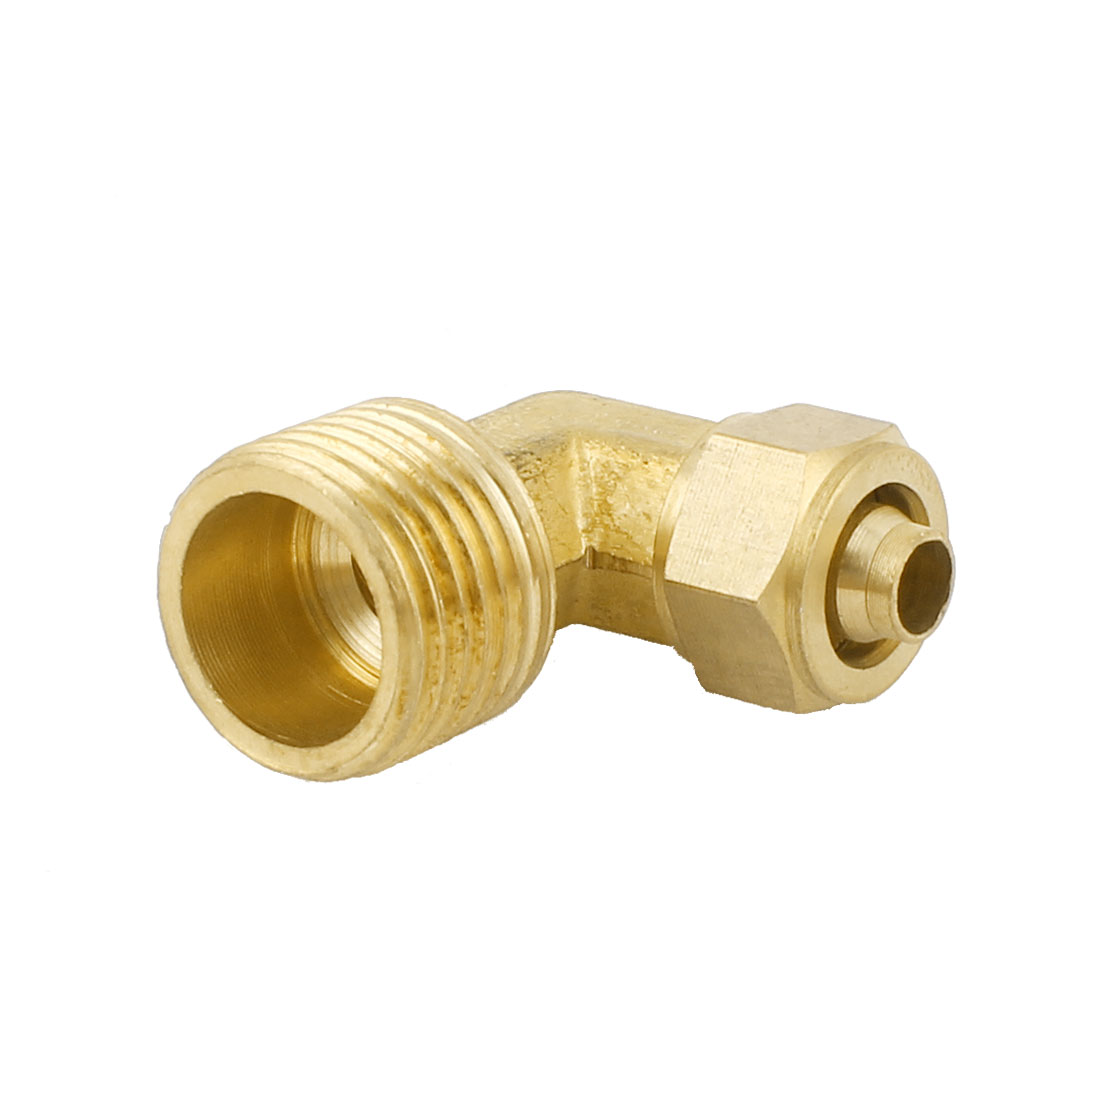 7mm Tube 1/2PT Thread L Shaped Elbow Quick Coupler Fitting